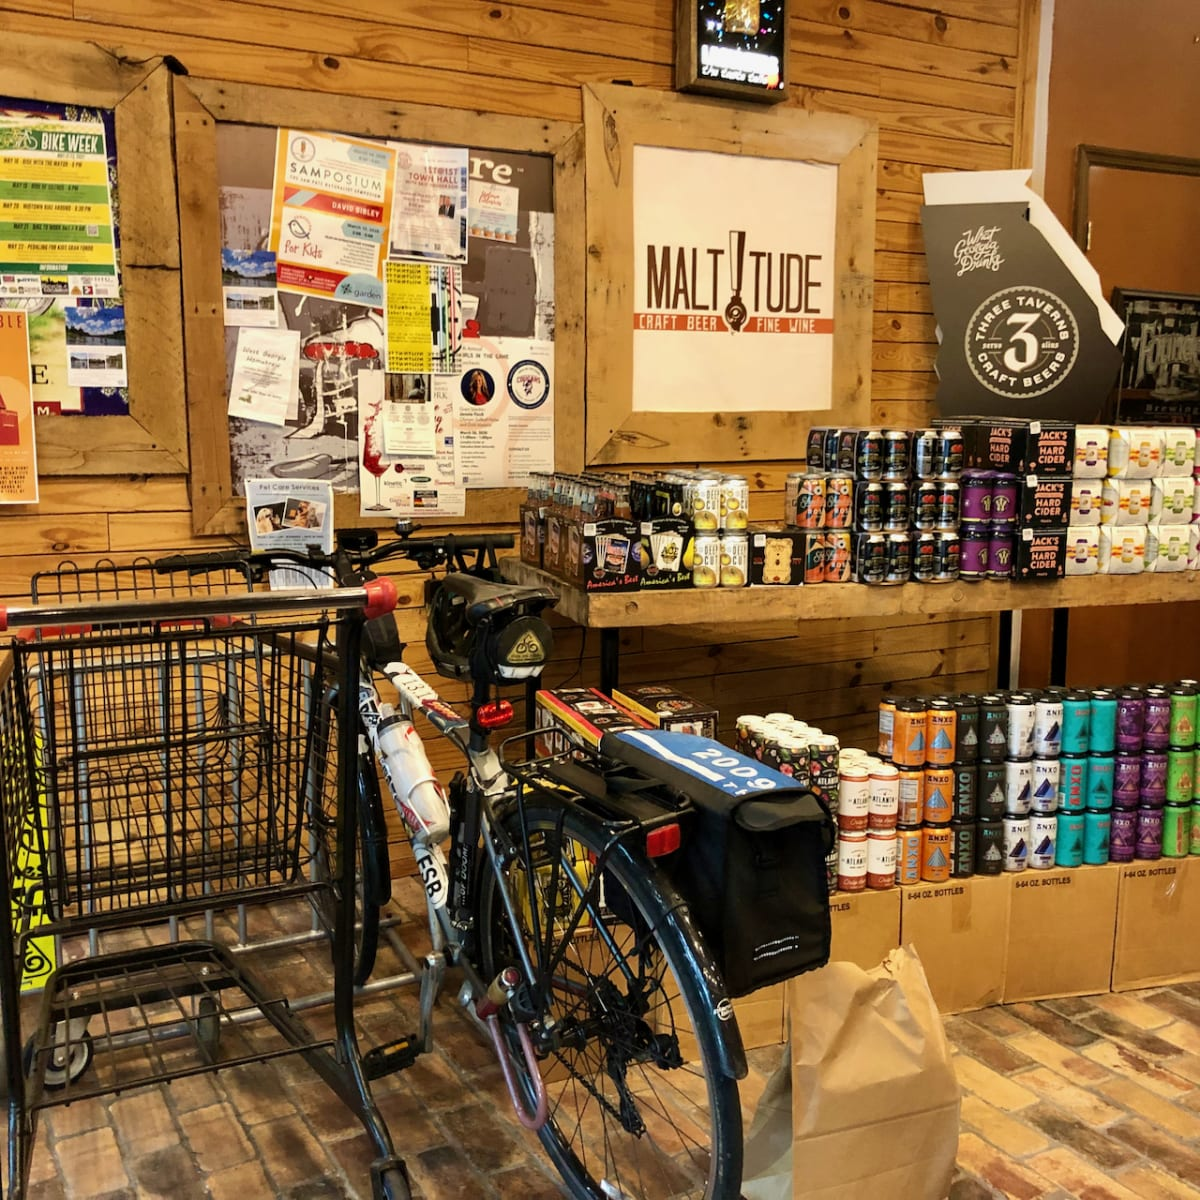 A photo of my bicycle parked inside the Maltitude store.